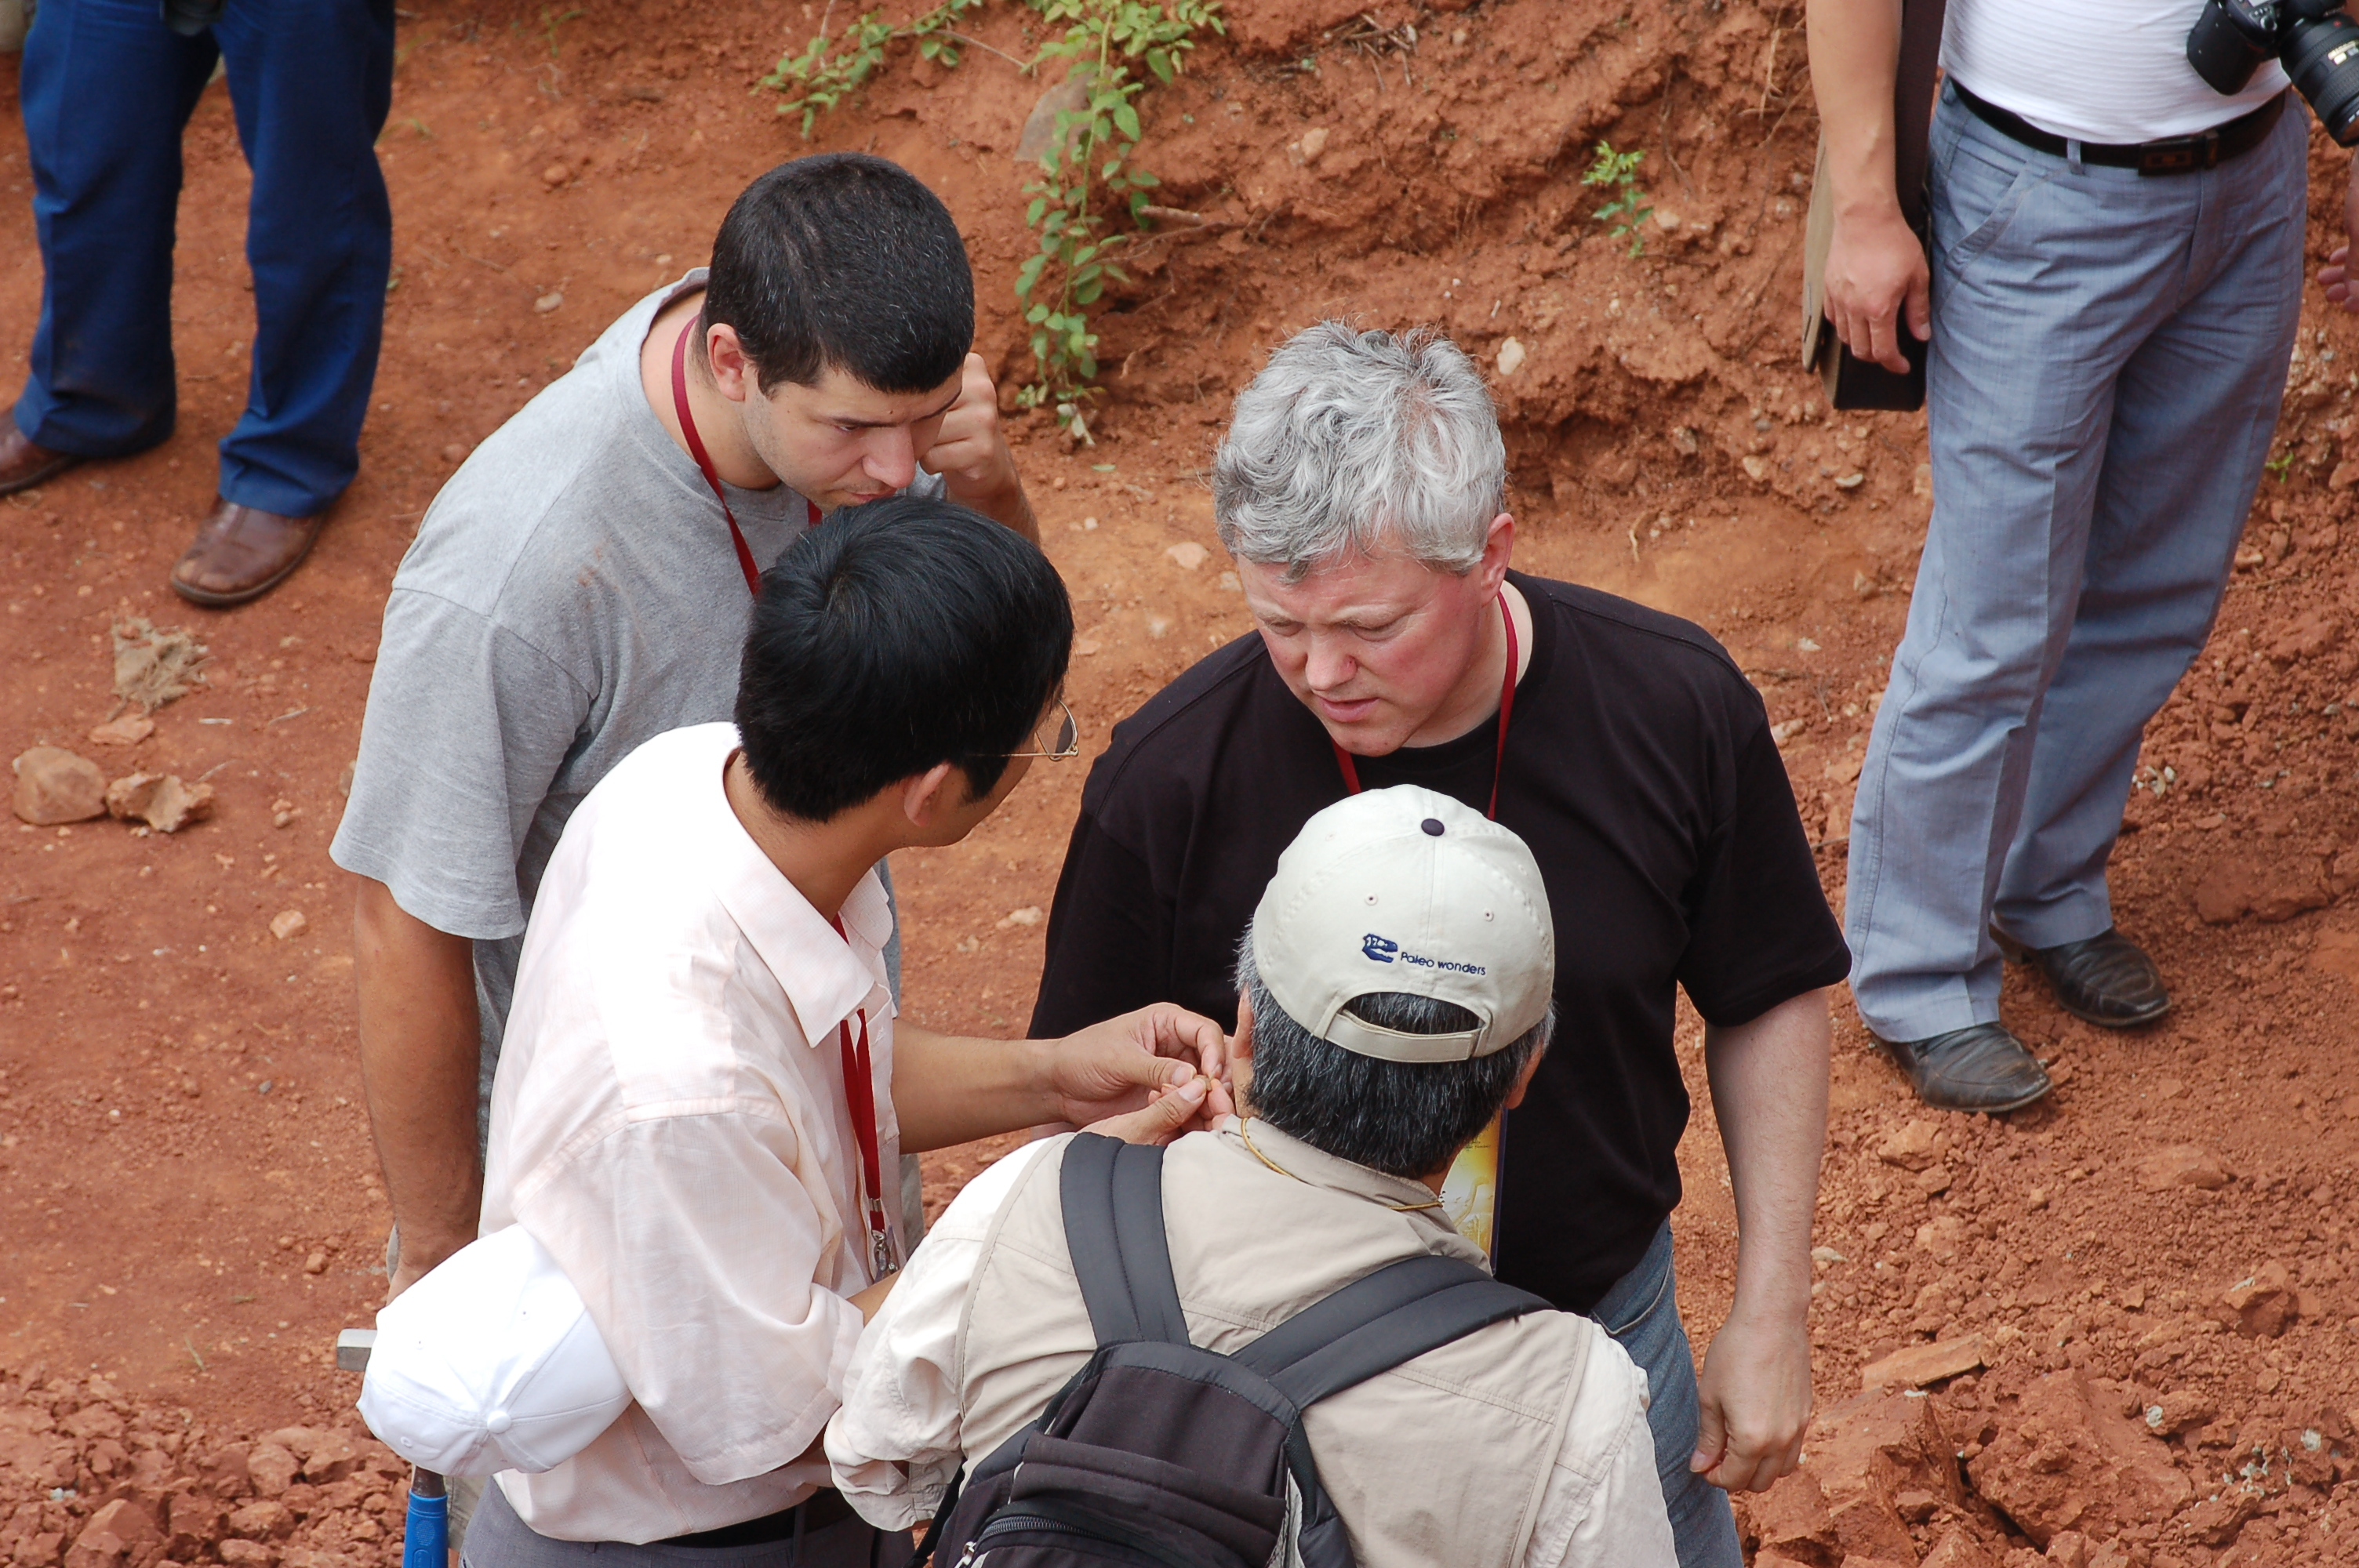 Hone, Unwin & Lu take in the sights in a hole in the ground.